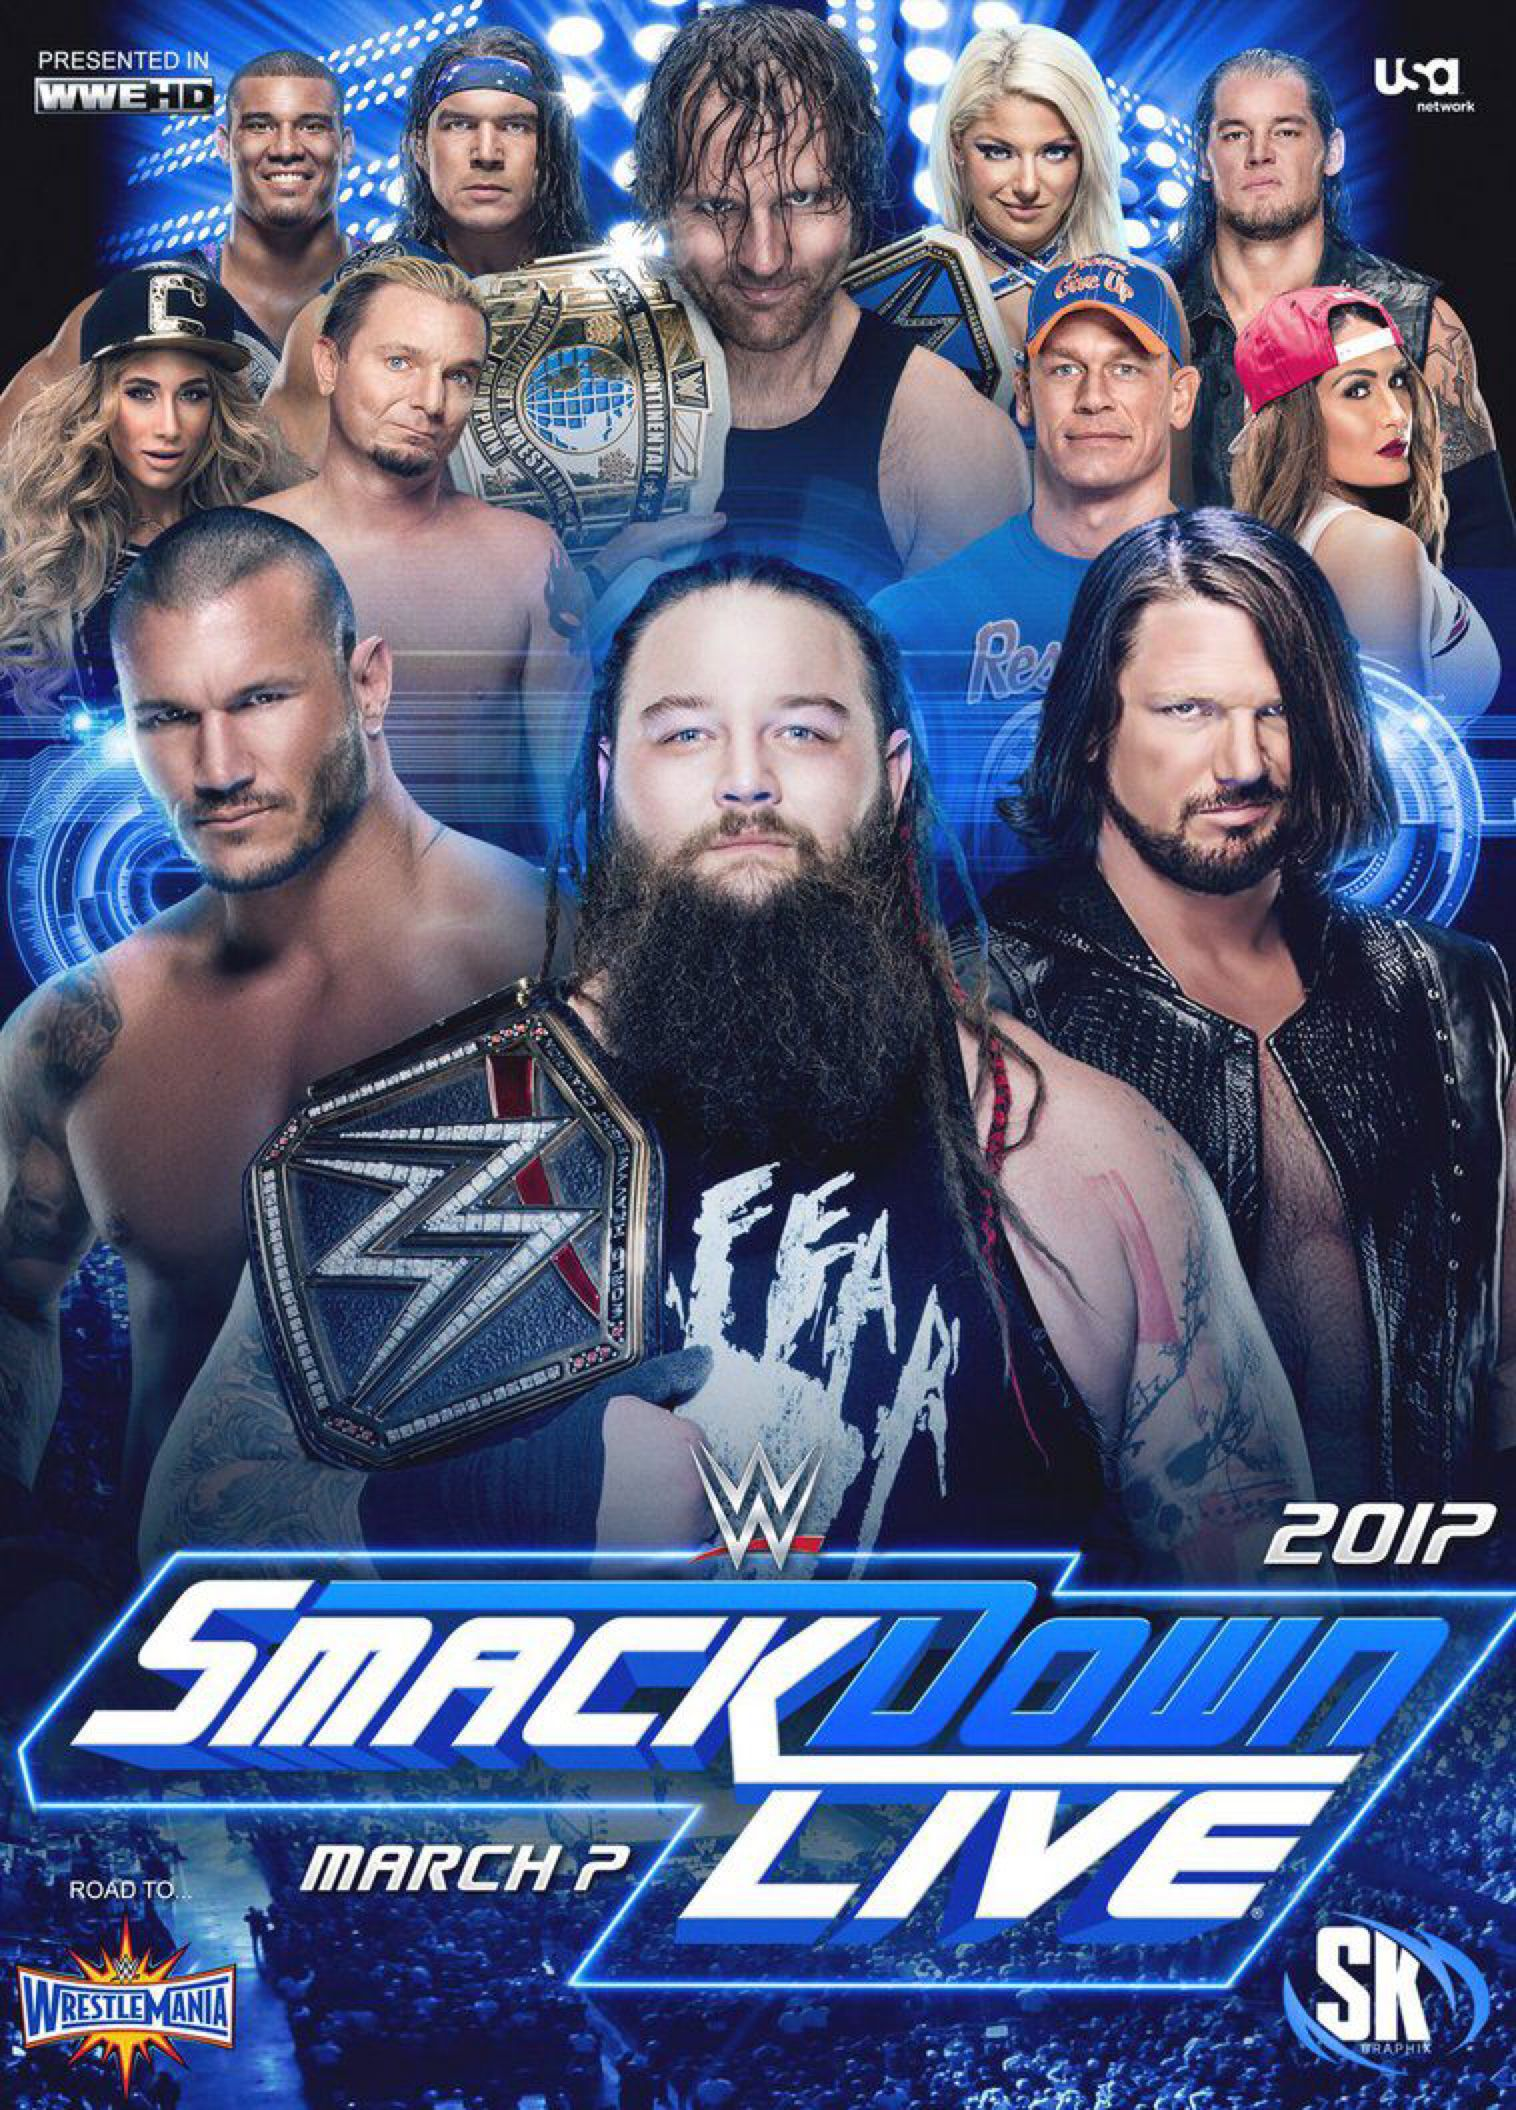 Smackdown Live March 7 2017 By Sk Graphix On Deviantart Wwe Superstars Wwe Wwe Ppv